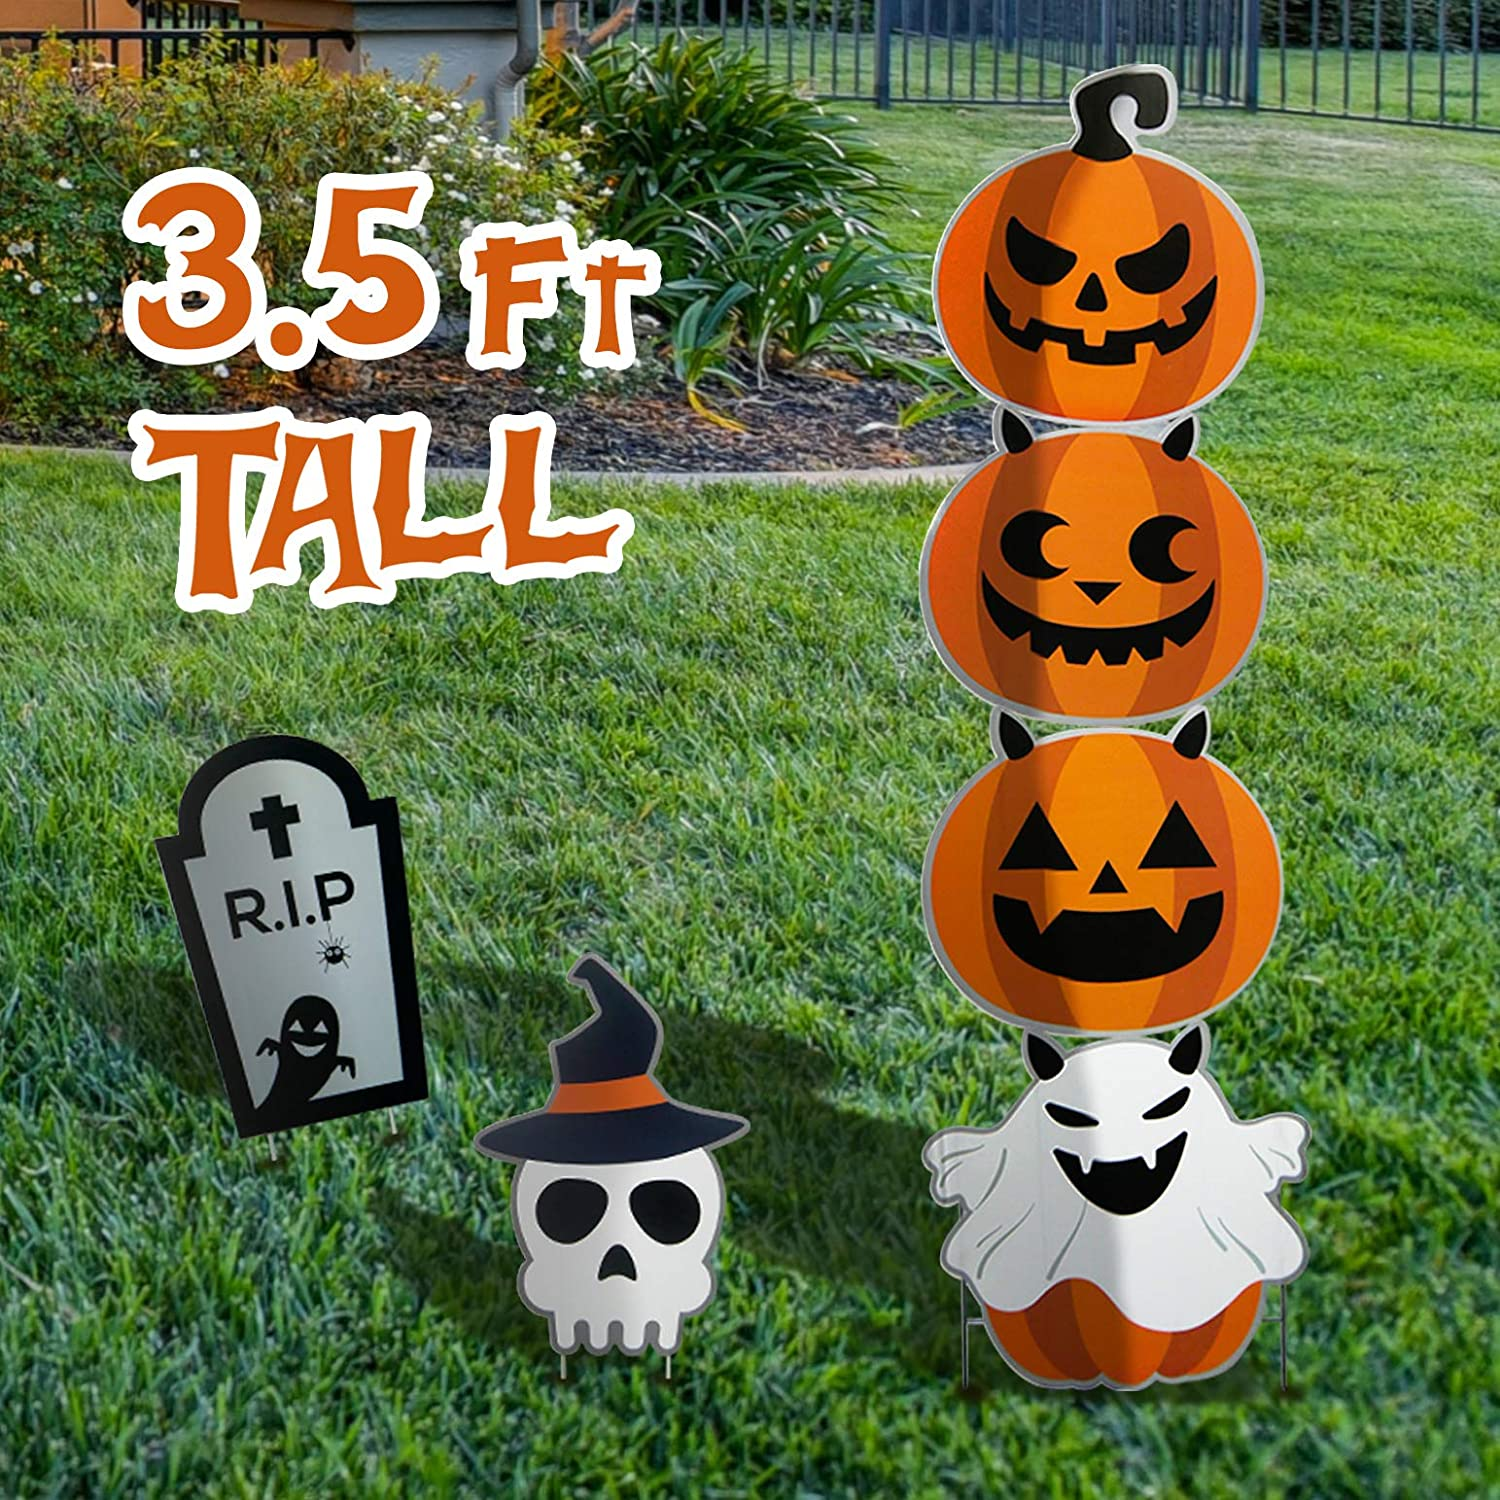 Sunlit Halloween Decorations Outdoor, 42 inches Extra Tall Halloween Yard Stakes Garden Stakes Signs, Halloween Props Holiday Decor Signs for Home Lawn Pathway Walkway, Pumpkin Ghost Tomb Skull